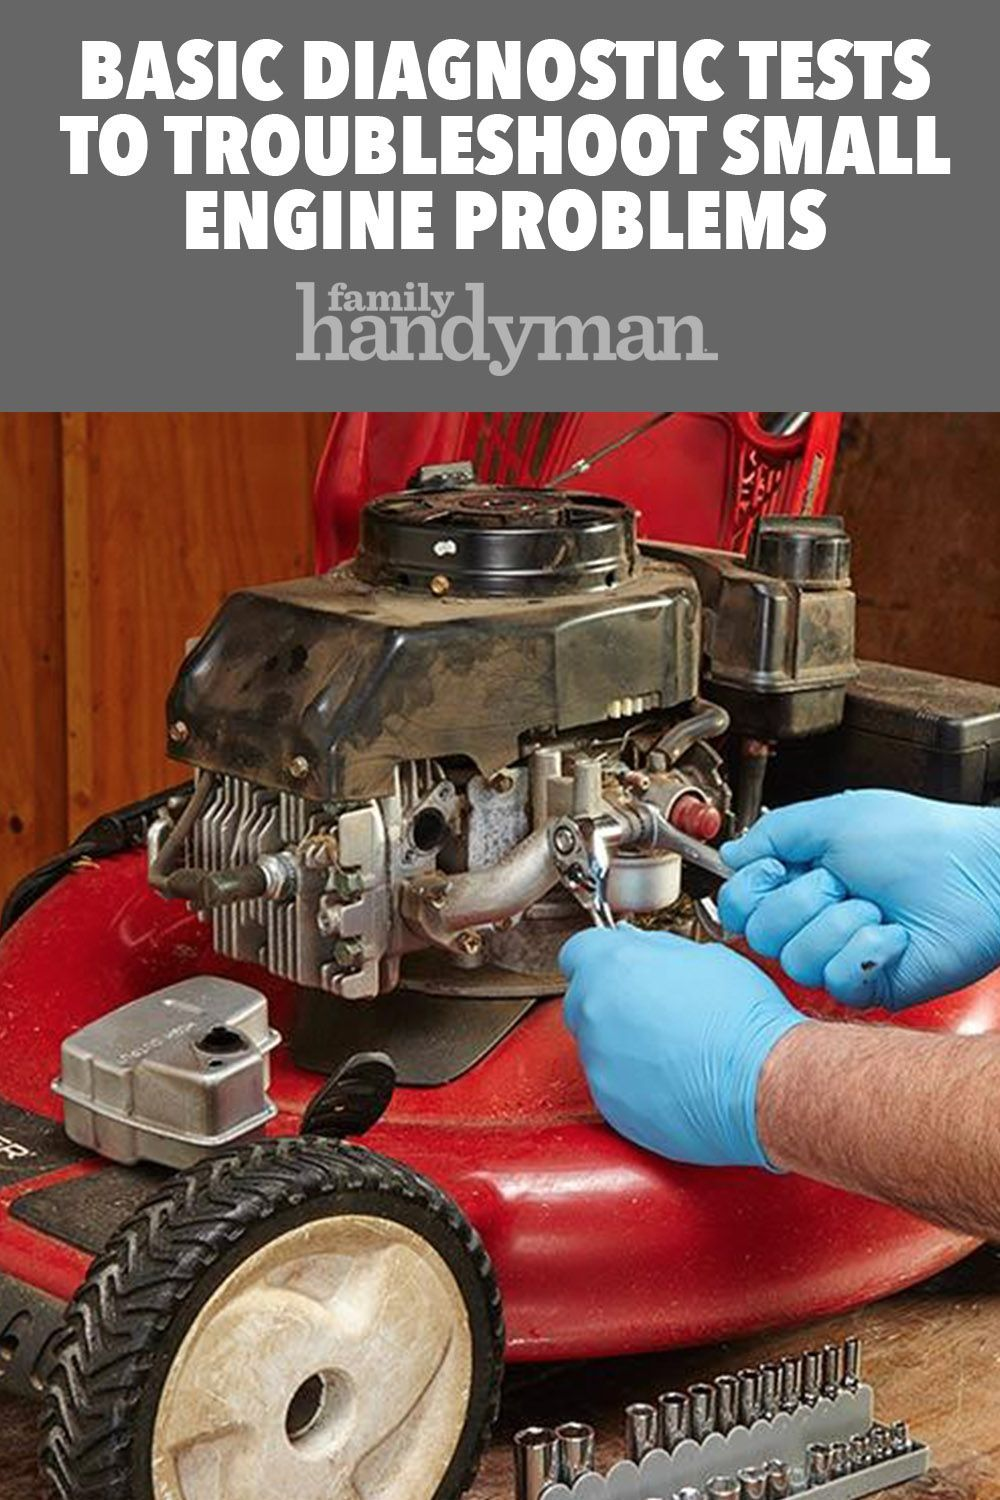 Basic Diagnostic Tests to Troubleshoot Small Engine